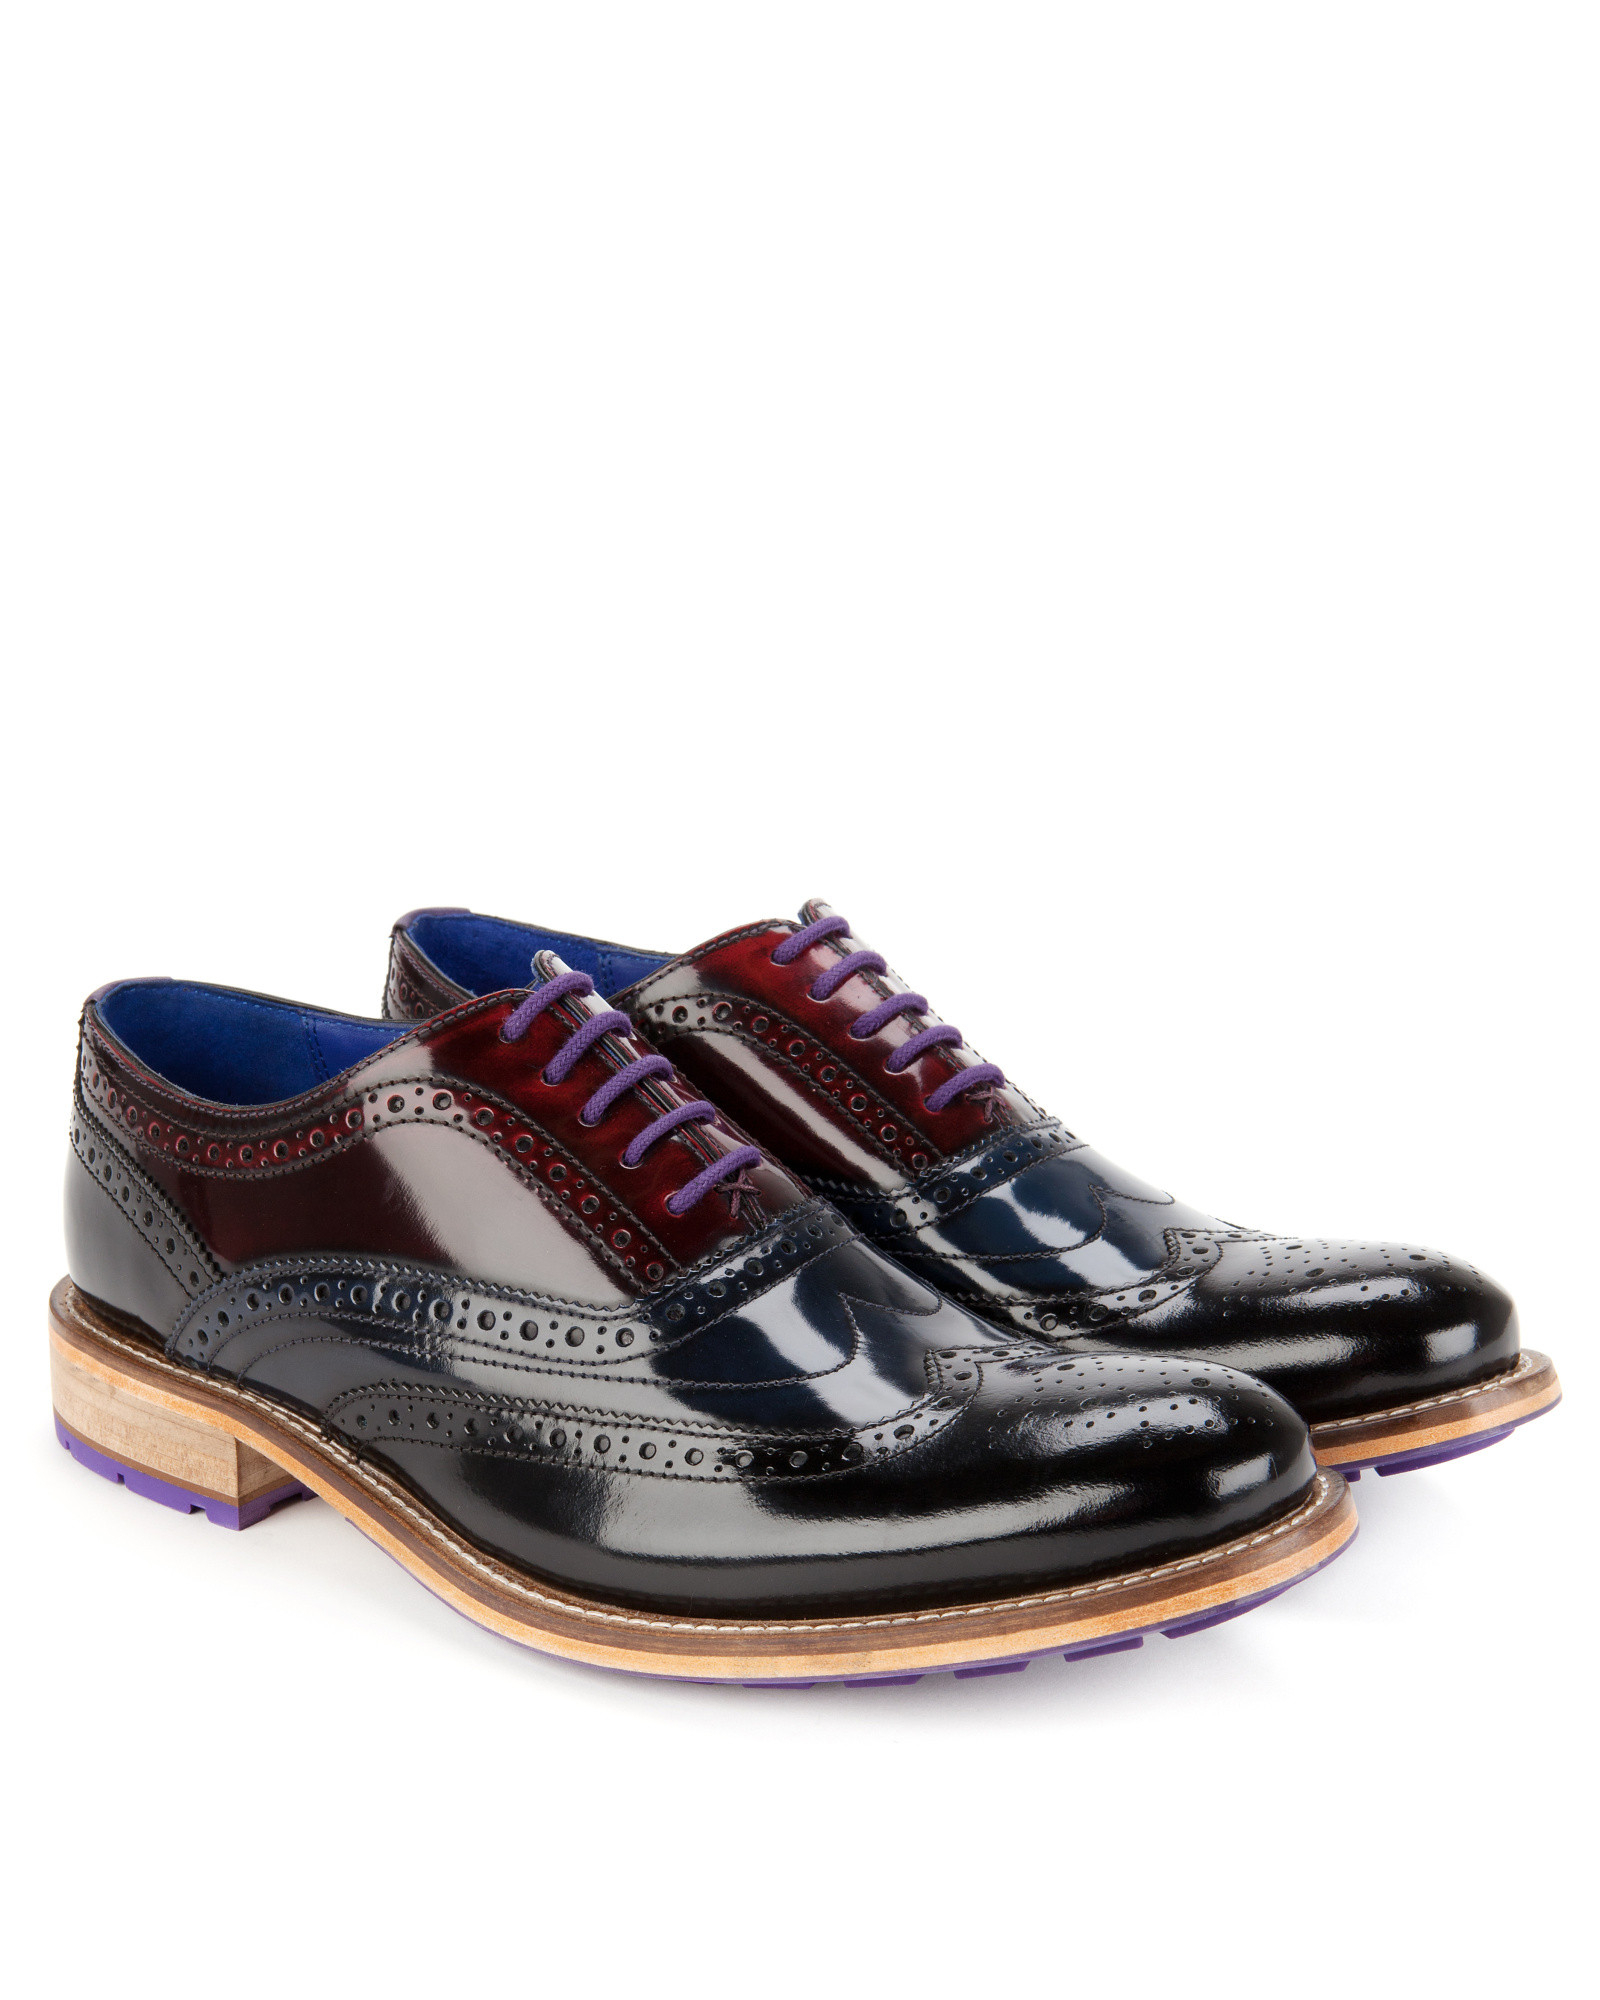 Ted Baker Dress Shoes With Blue Laces